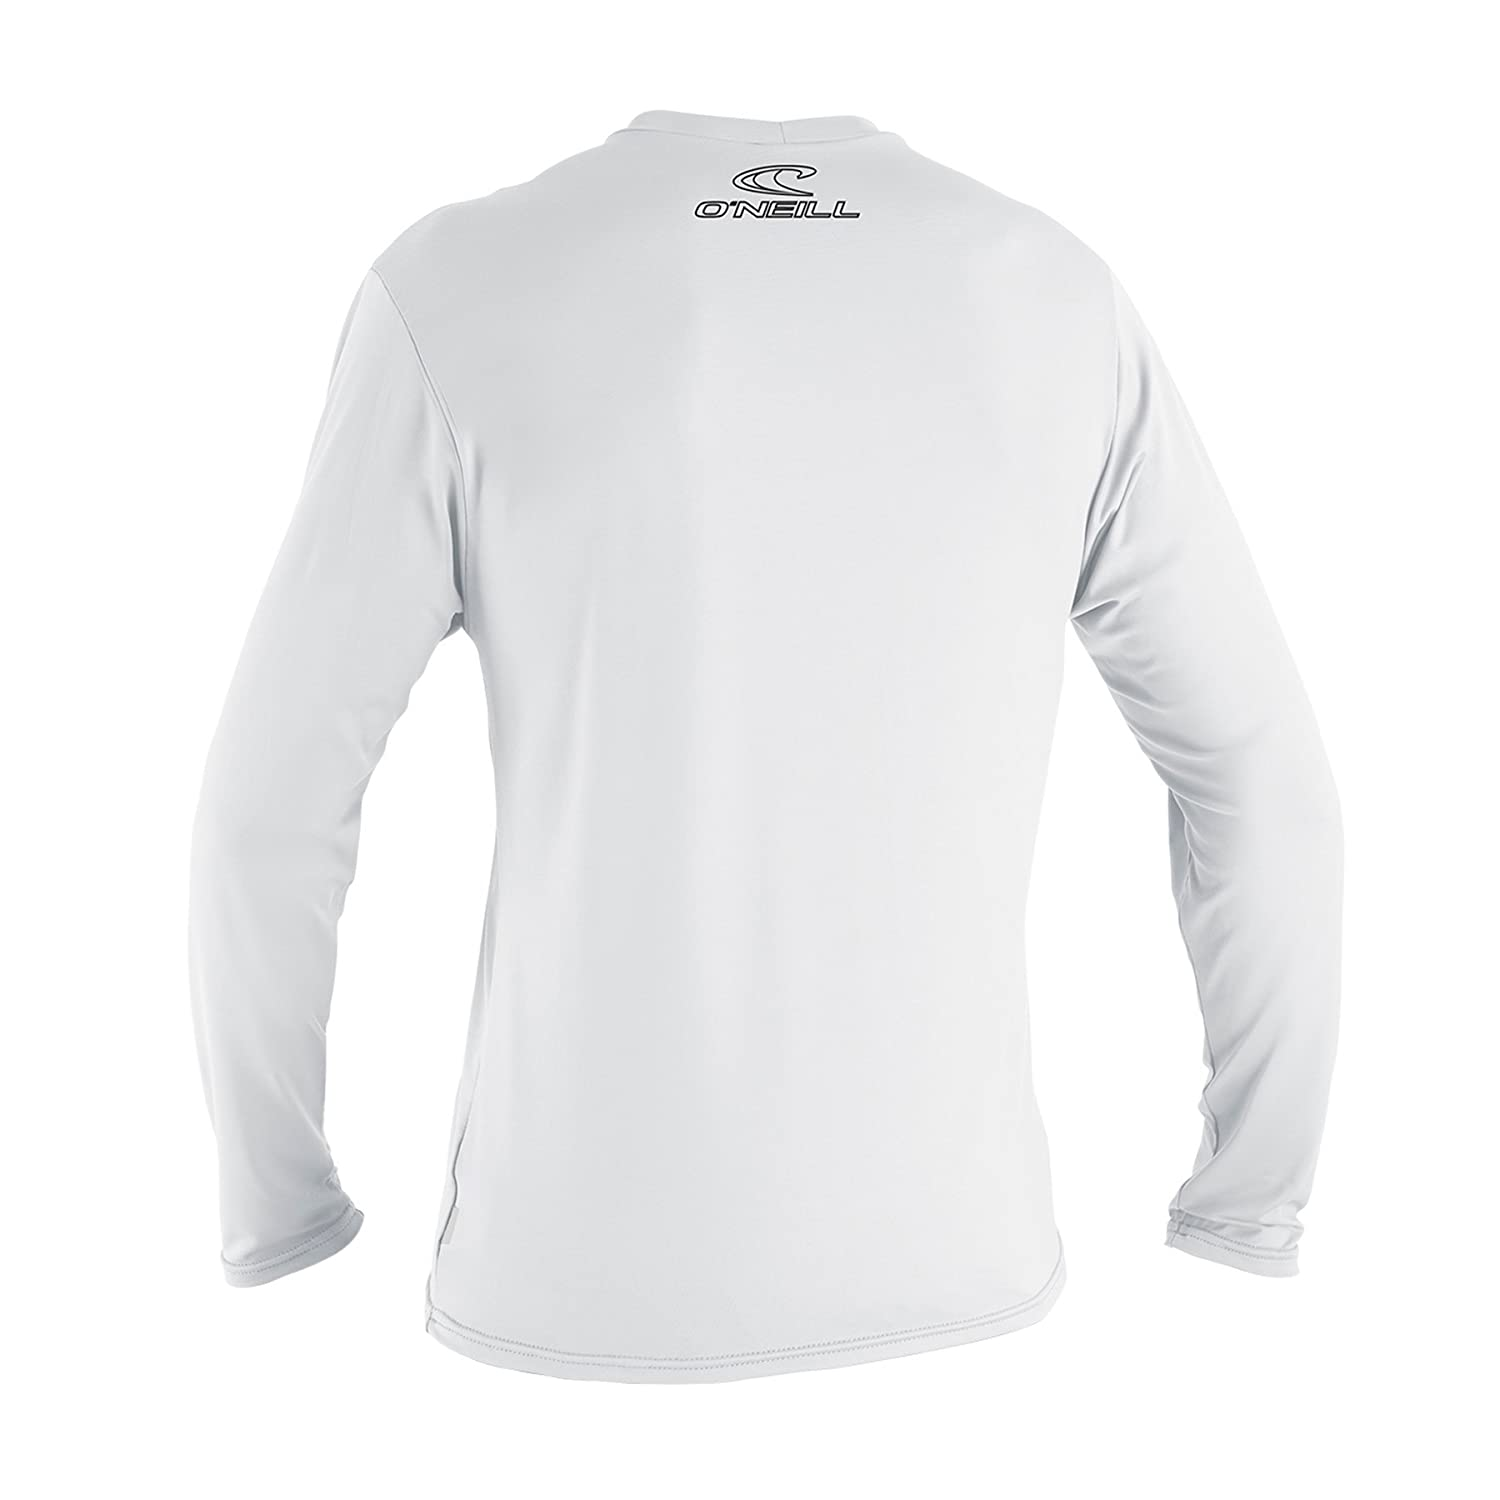 O;Neill Youth Junior T-Shirt Basilic /à Manches Longues et /à Manches Longues et /à Manches Longues Protection Contre Les Rayons UV et FPS Blanc